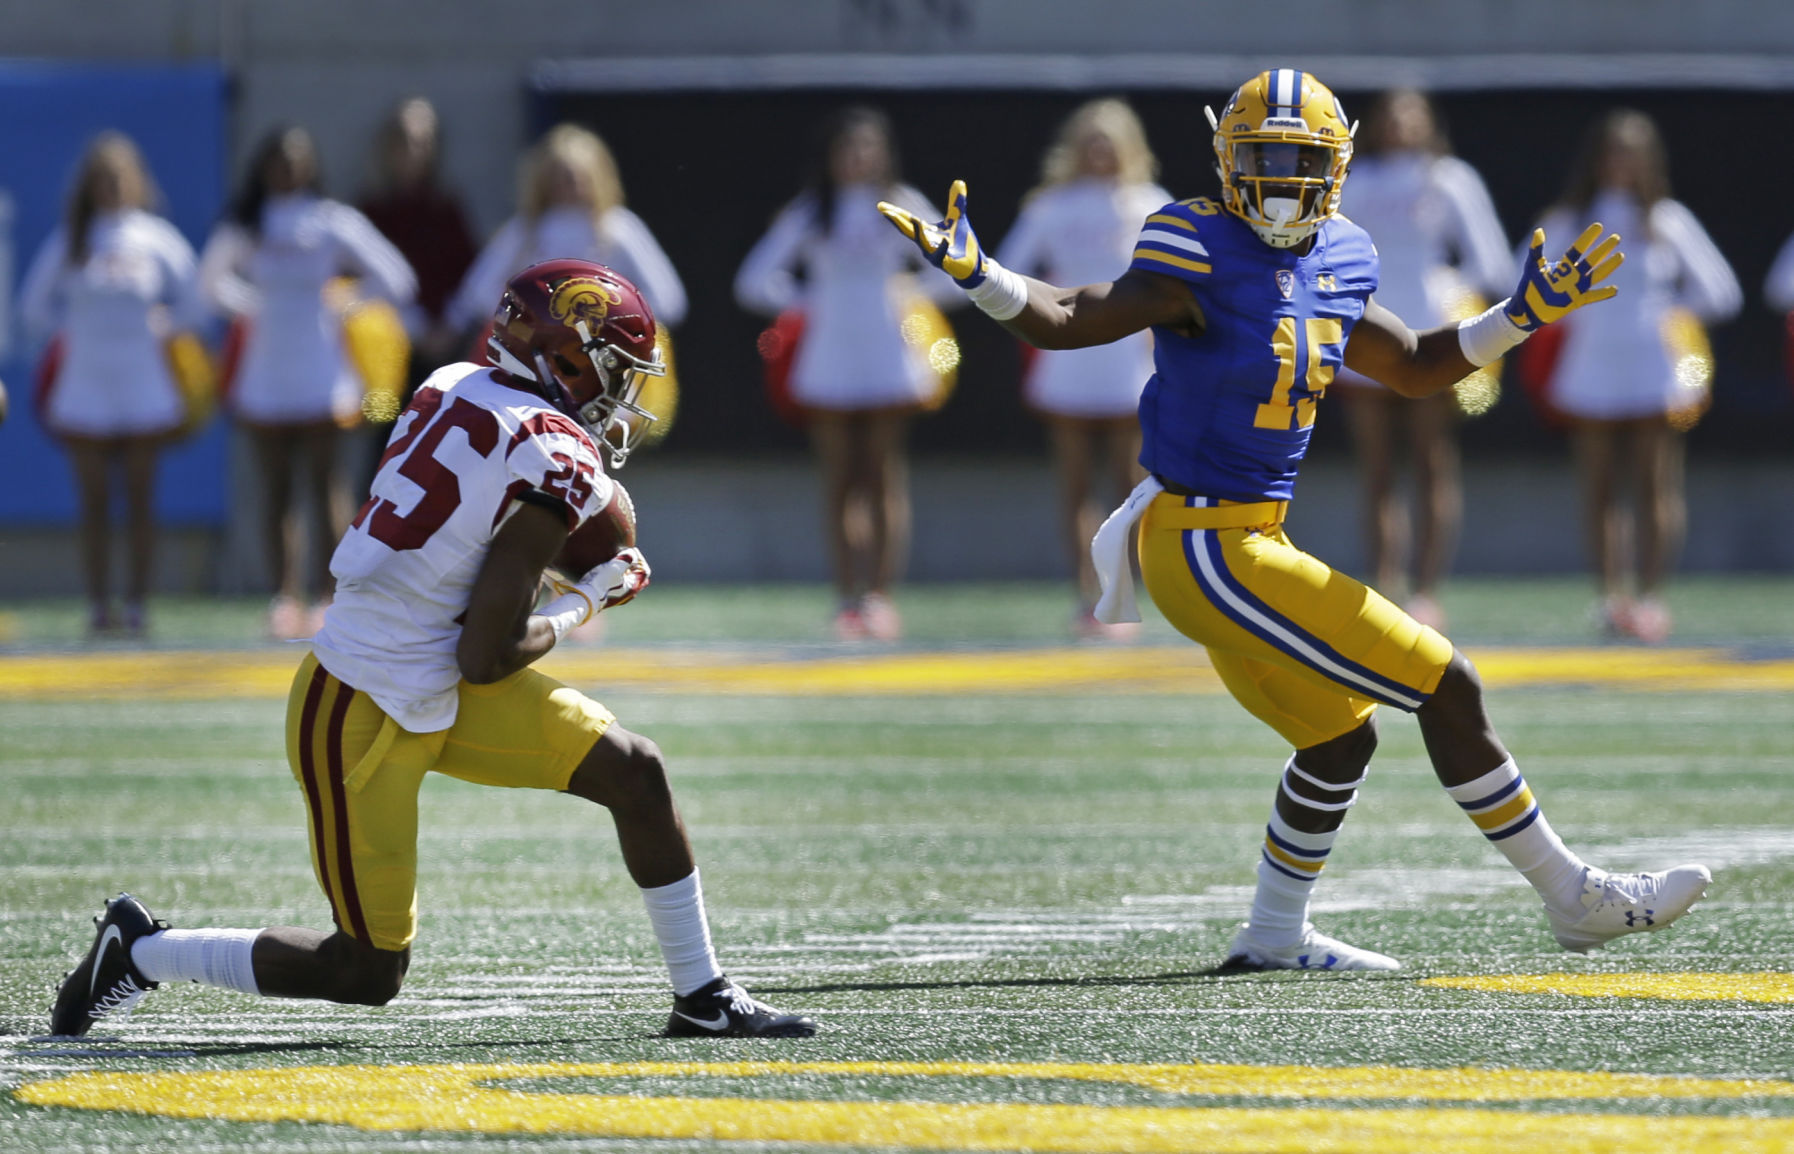 USC football surges late, tops Cal in road opener